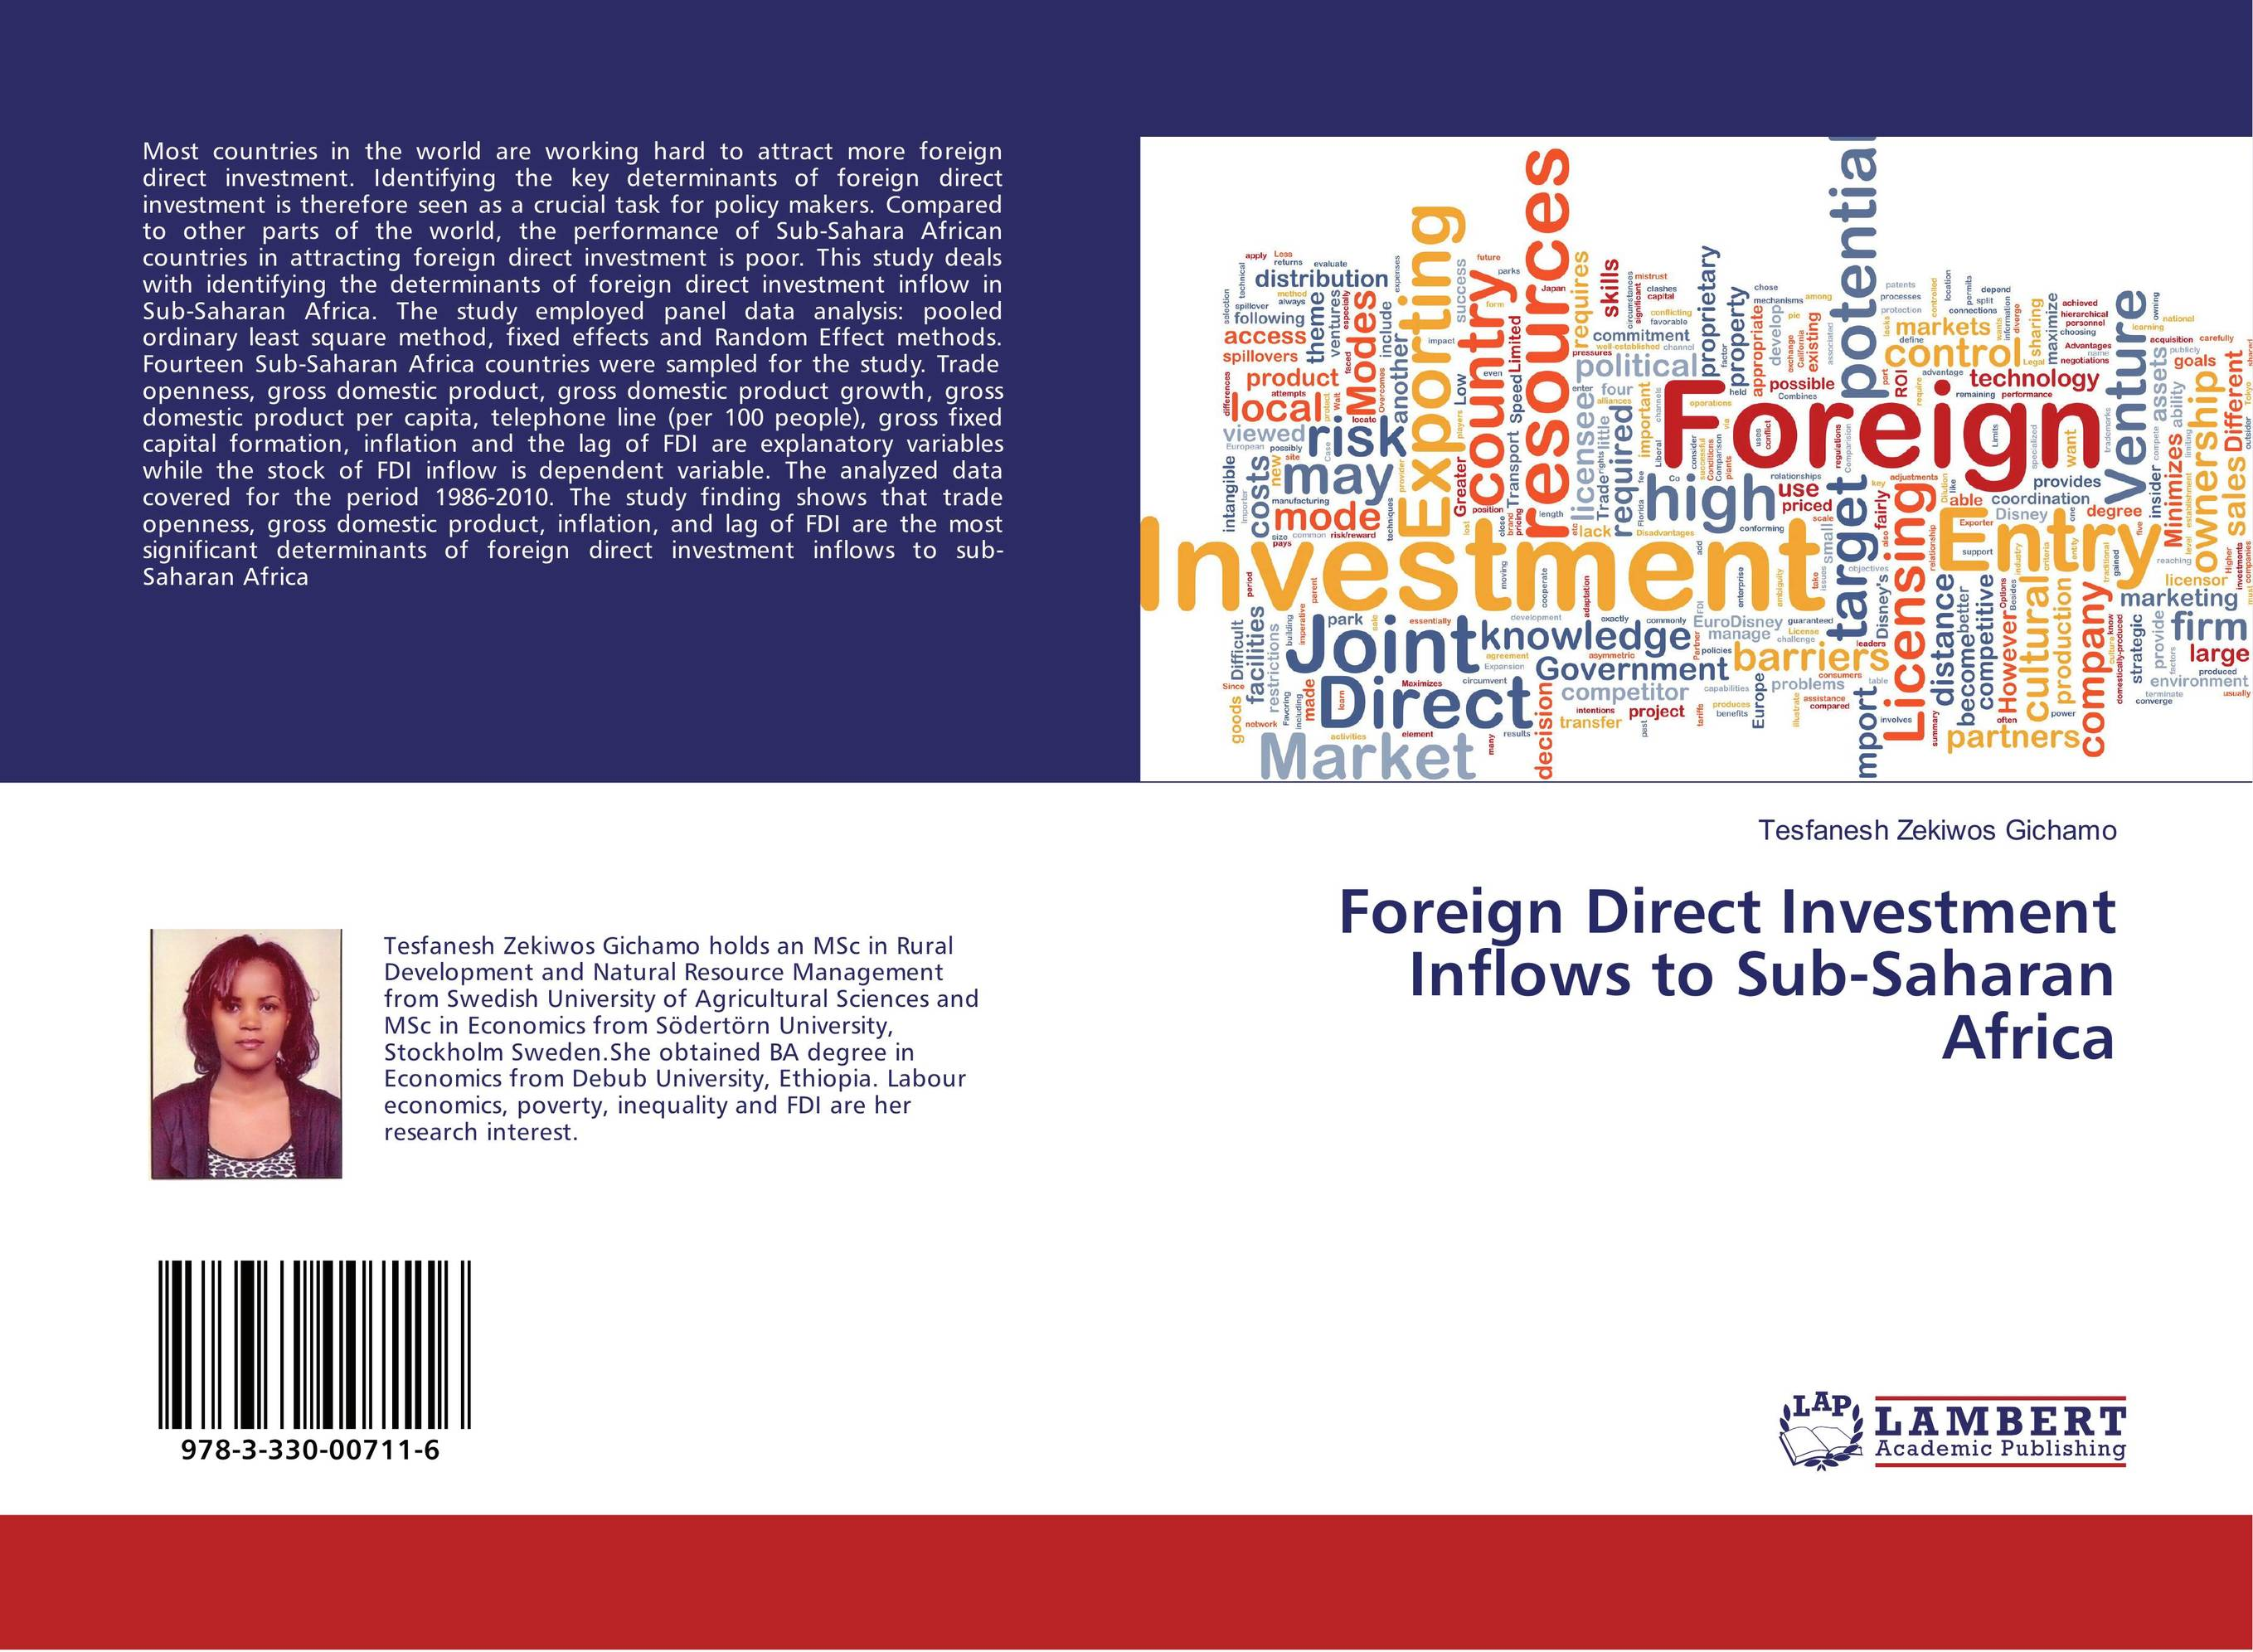 fdi and economic growth in the Foreign direct investment (fdi) has been viewed as a power affecting economic growth (eg) directly and indirectly during the past few decades.